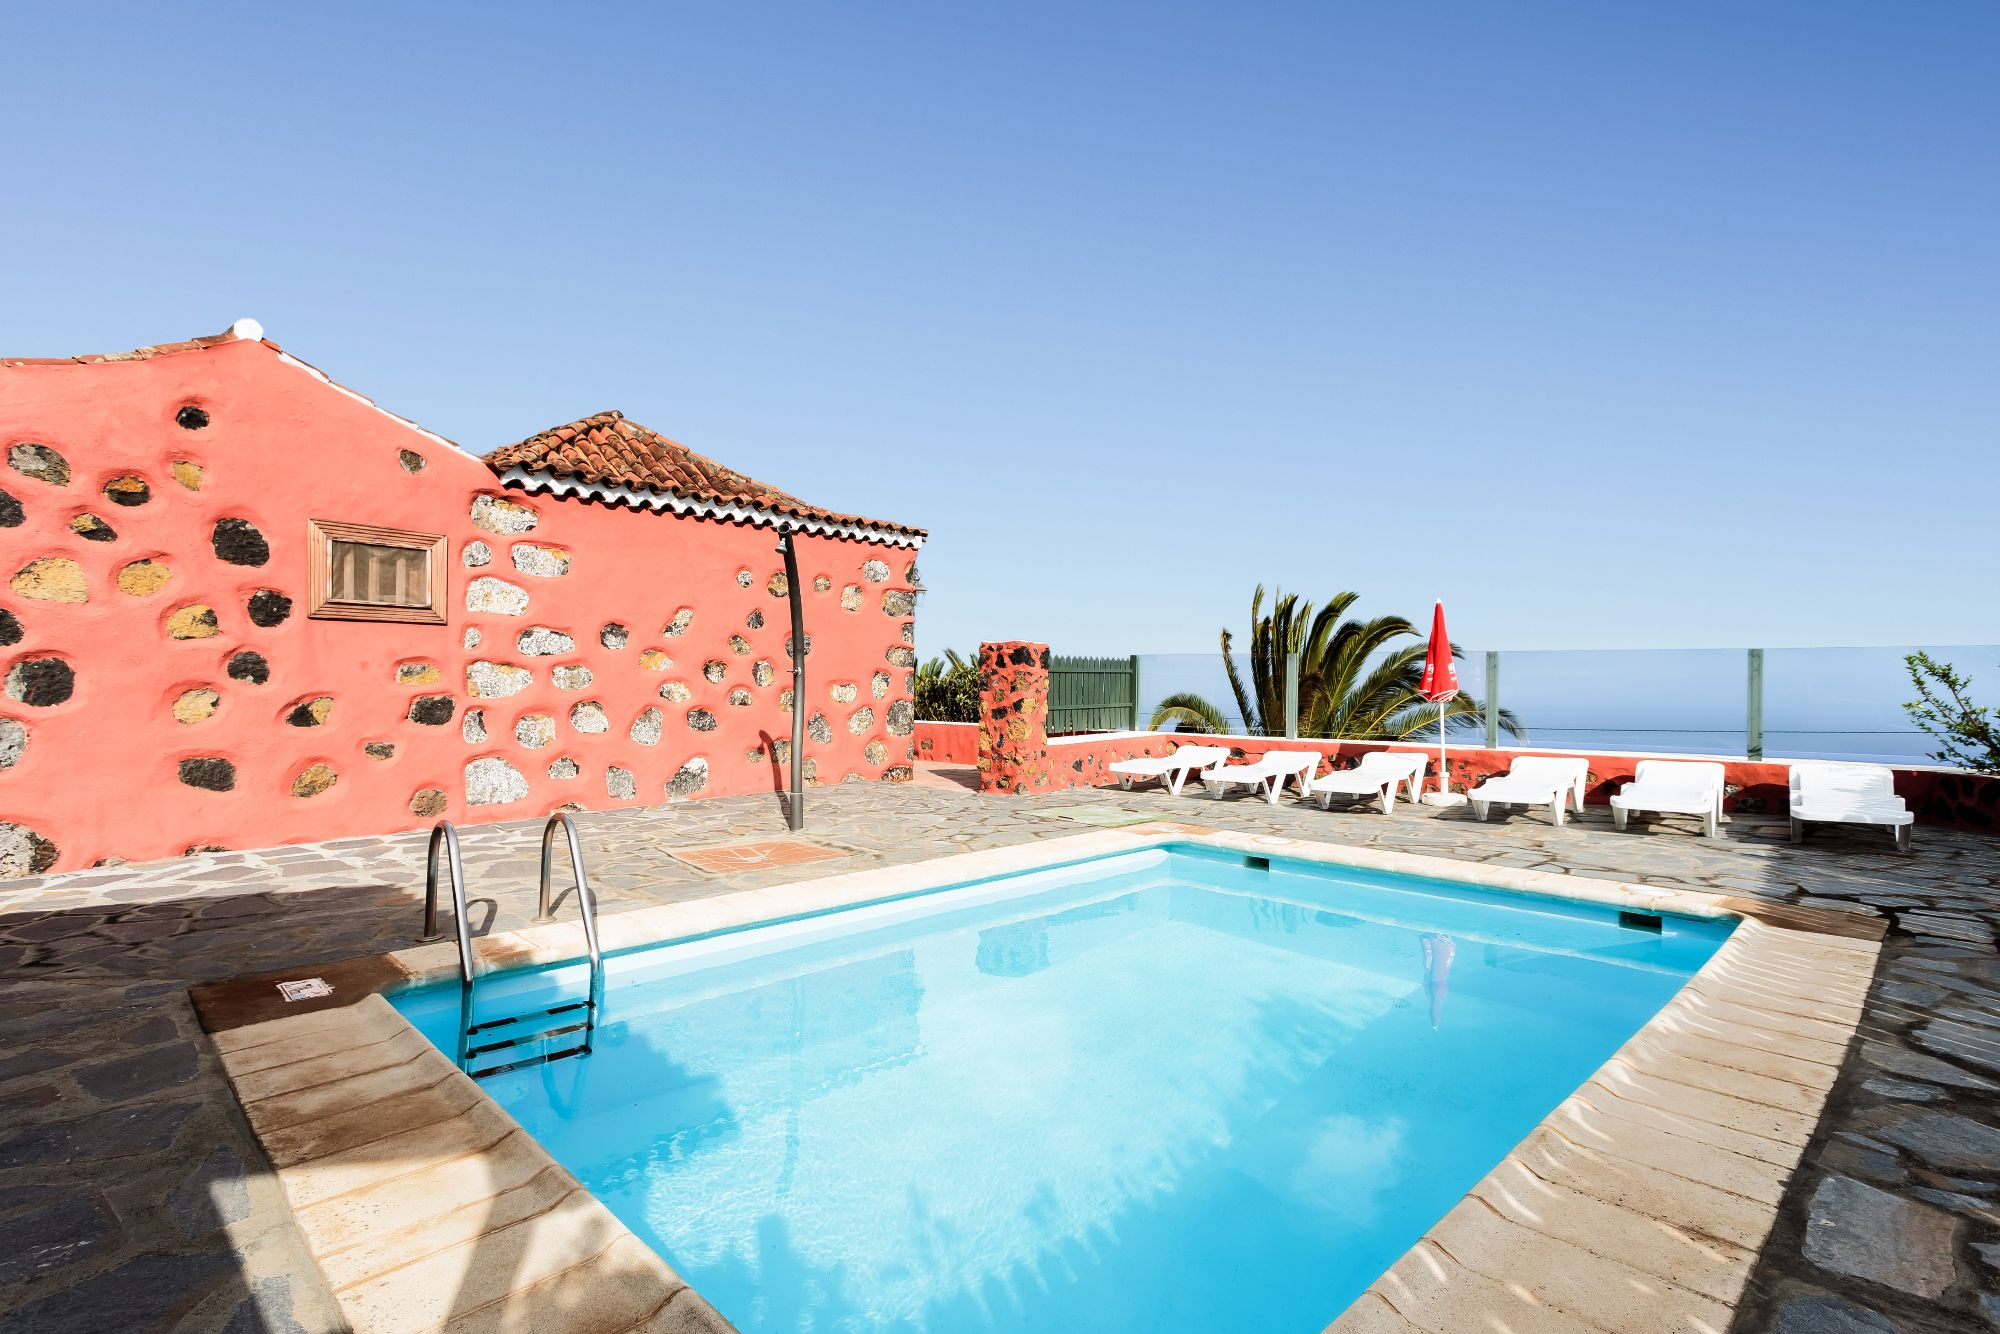 Casa Draguitos with swimming pool, Mazo, La Palma